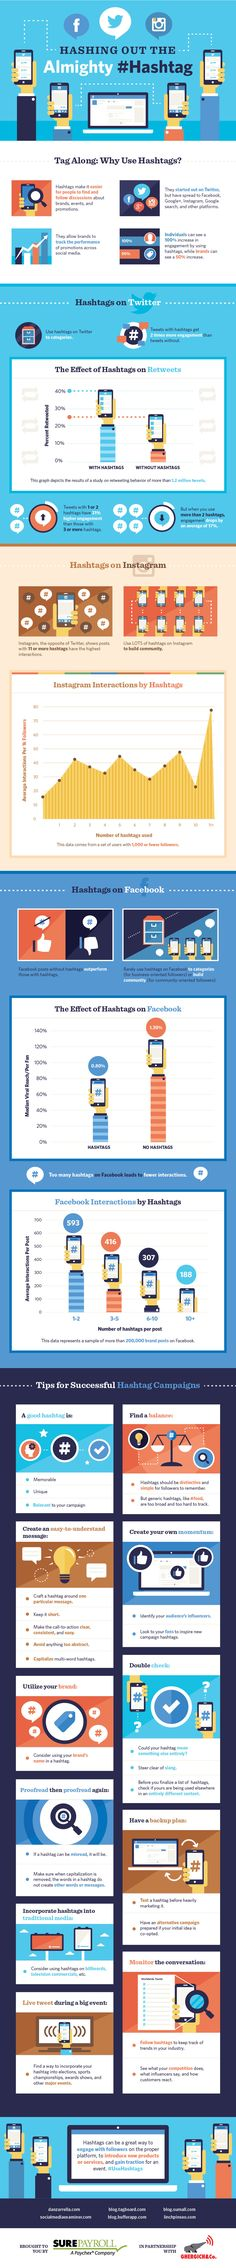 The dos and donts of #hashtags.  Social Media Marketing